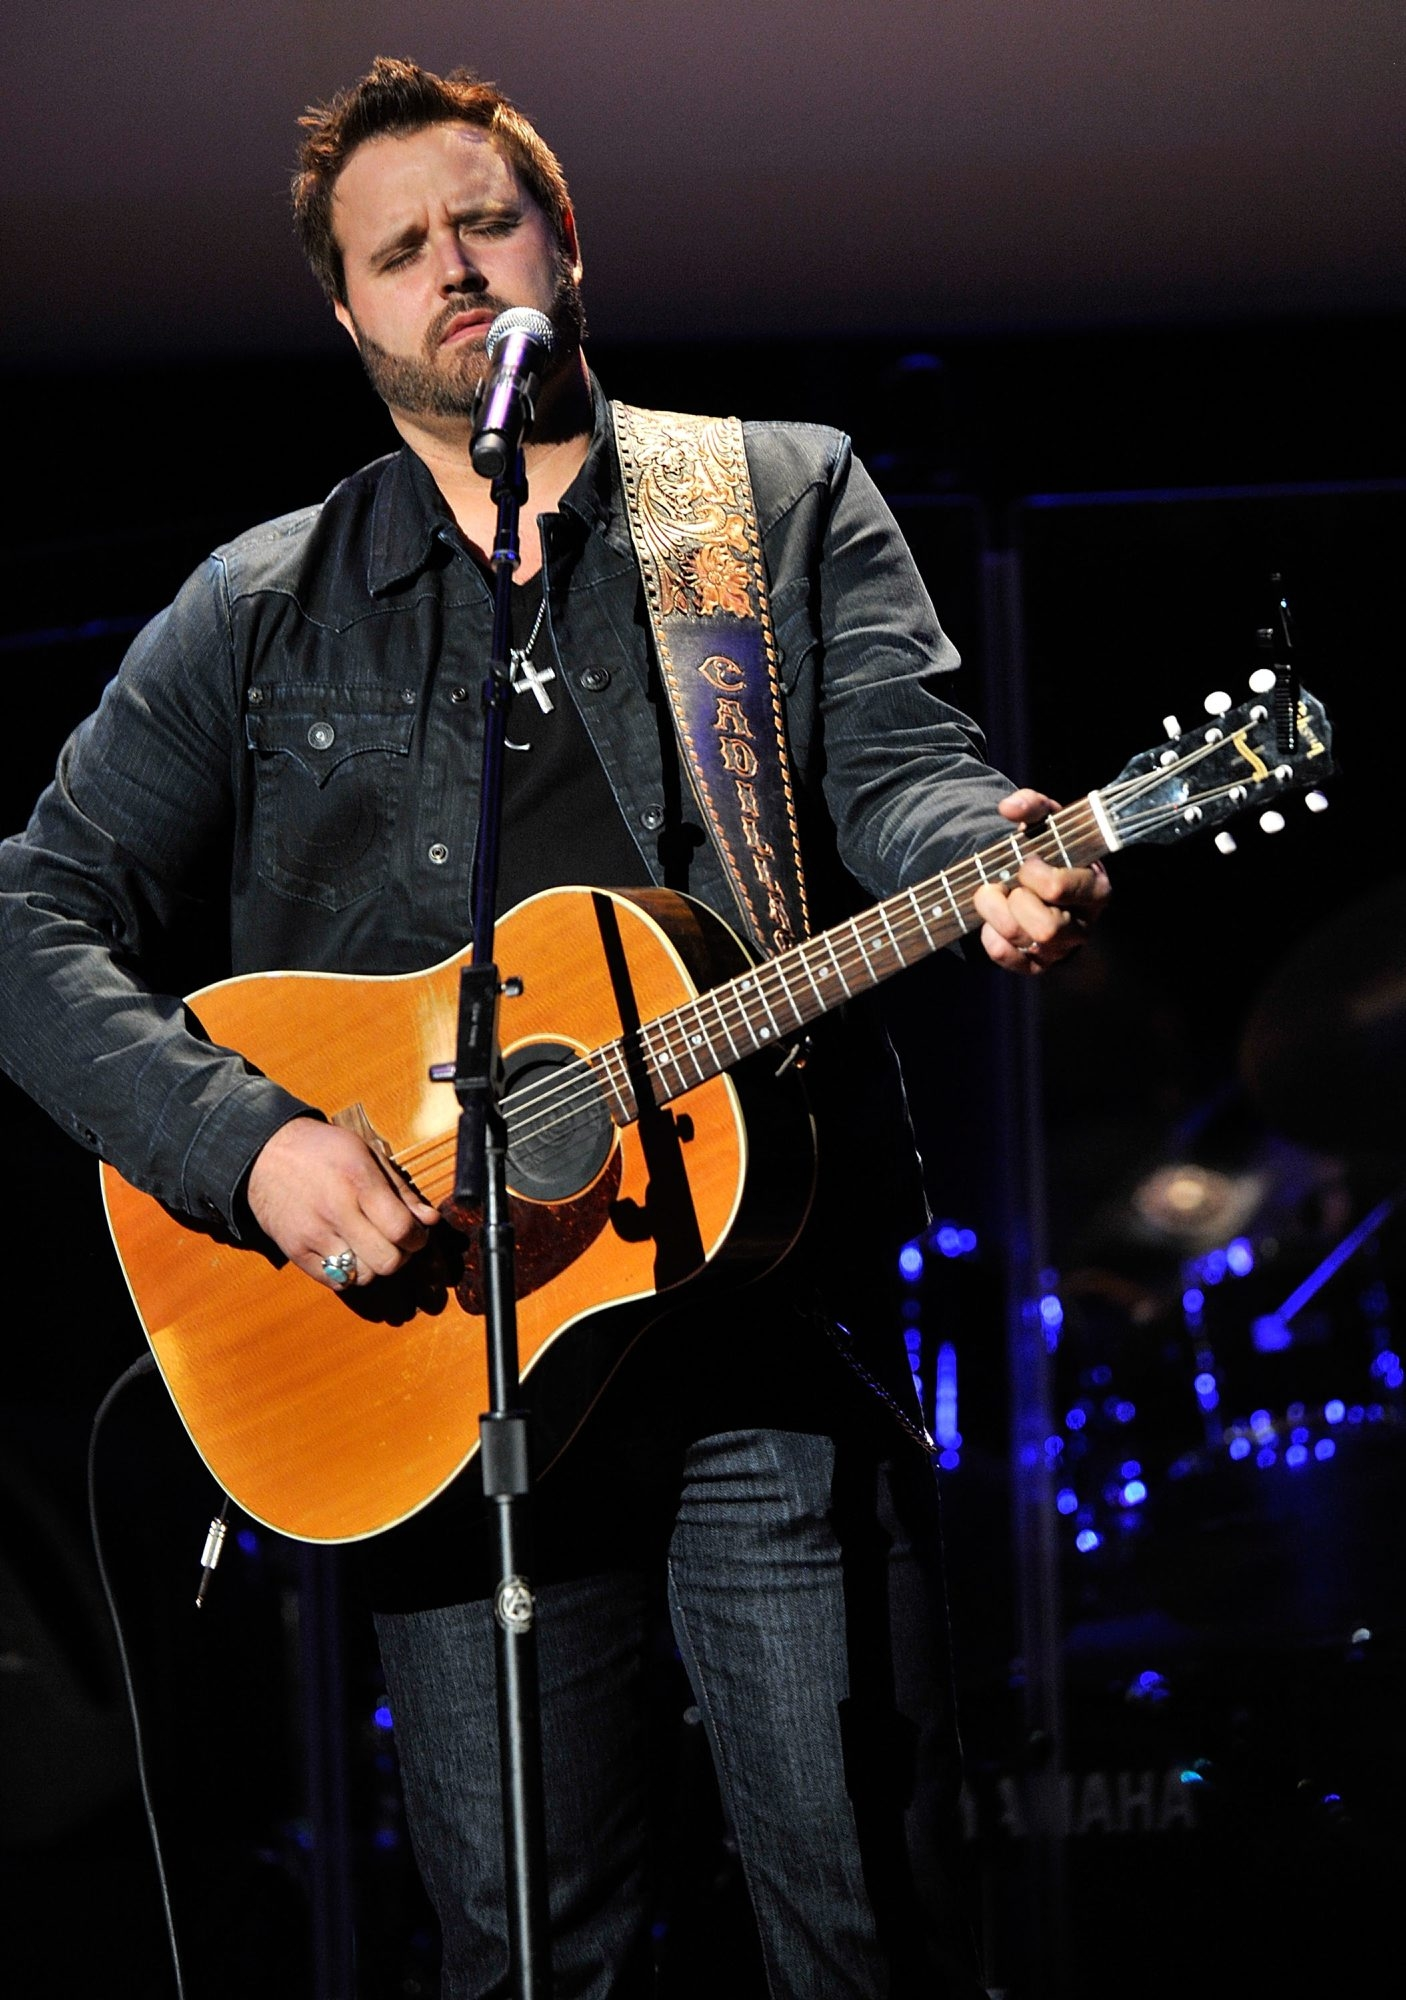 NASHVILLE, TN - SEPTEMBER 24:  Randy Houser performs at the 6th Annual ACM Honors  at Ryman Auditorium on September 24, 2012 in Nashville, Tennessee.  (Photo by Frederick Breedon IV/Getty Images for ACM)